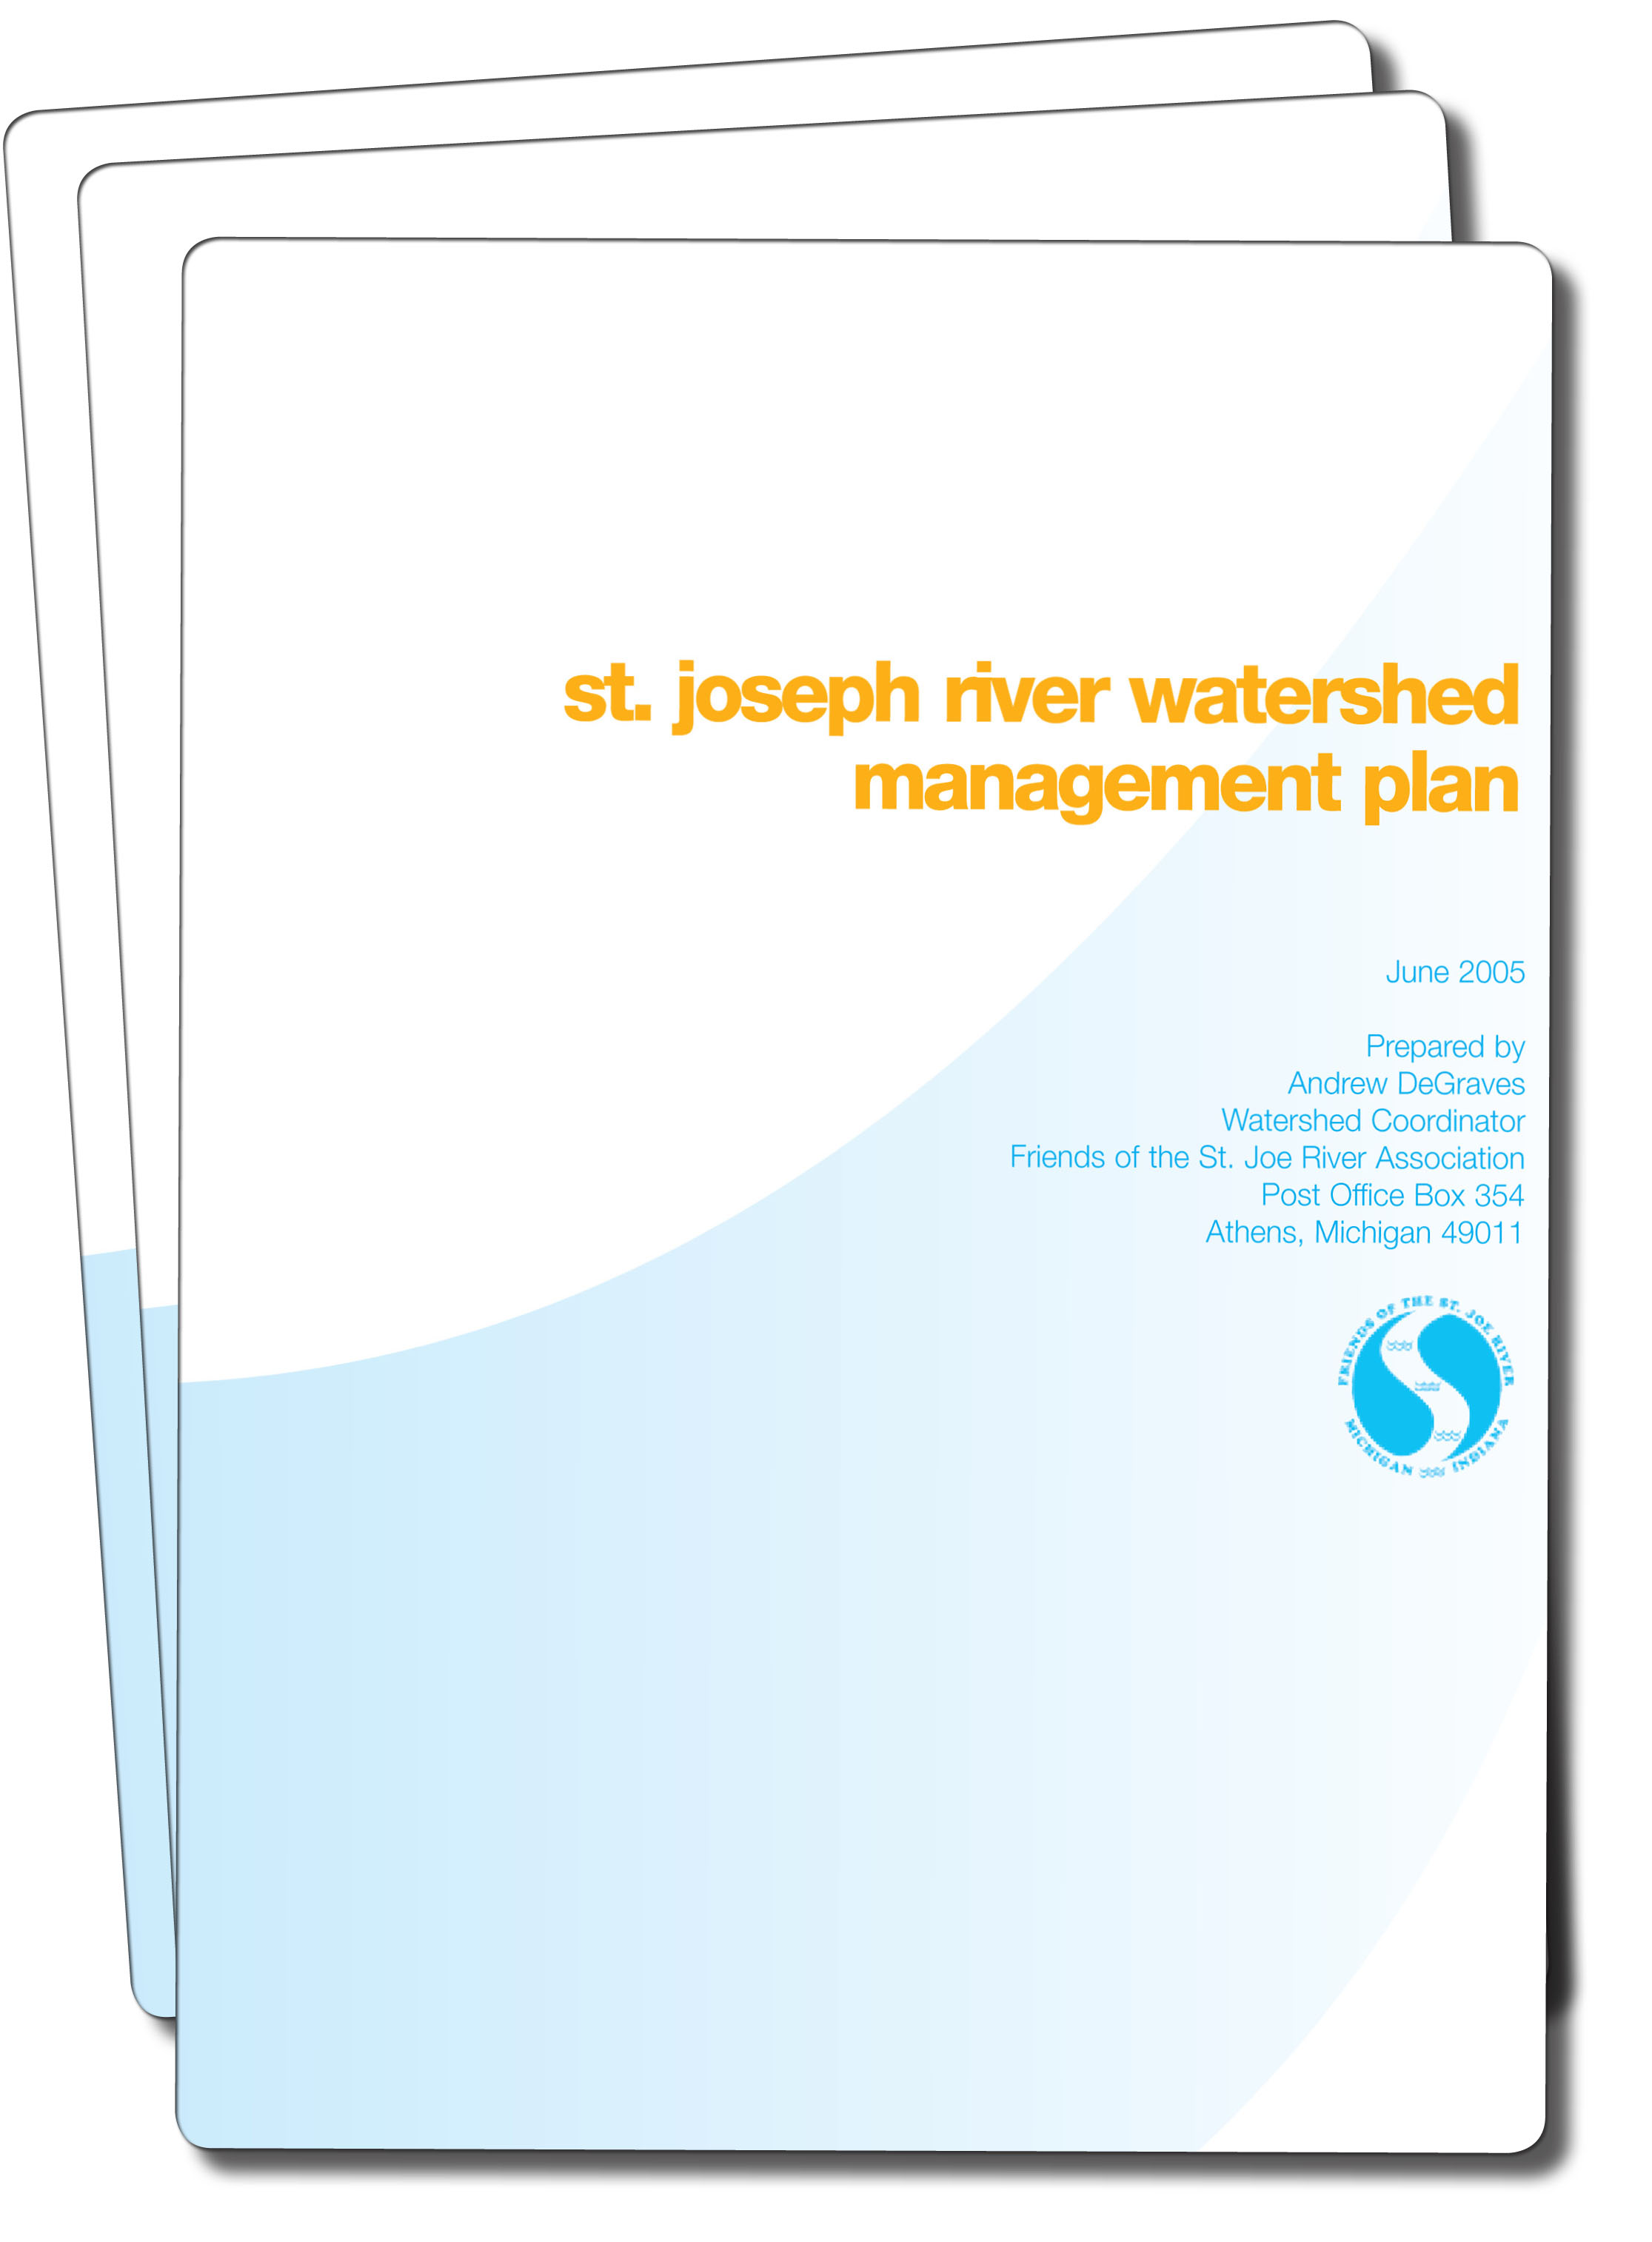 View the St. Joseph River Watershed Management Plan